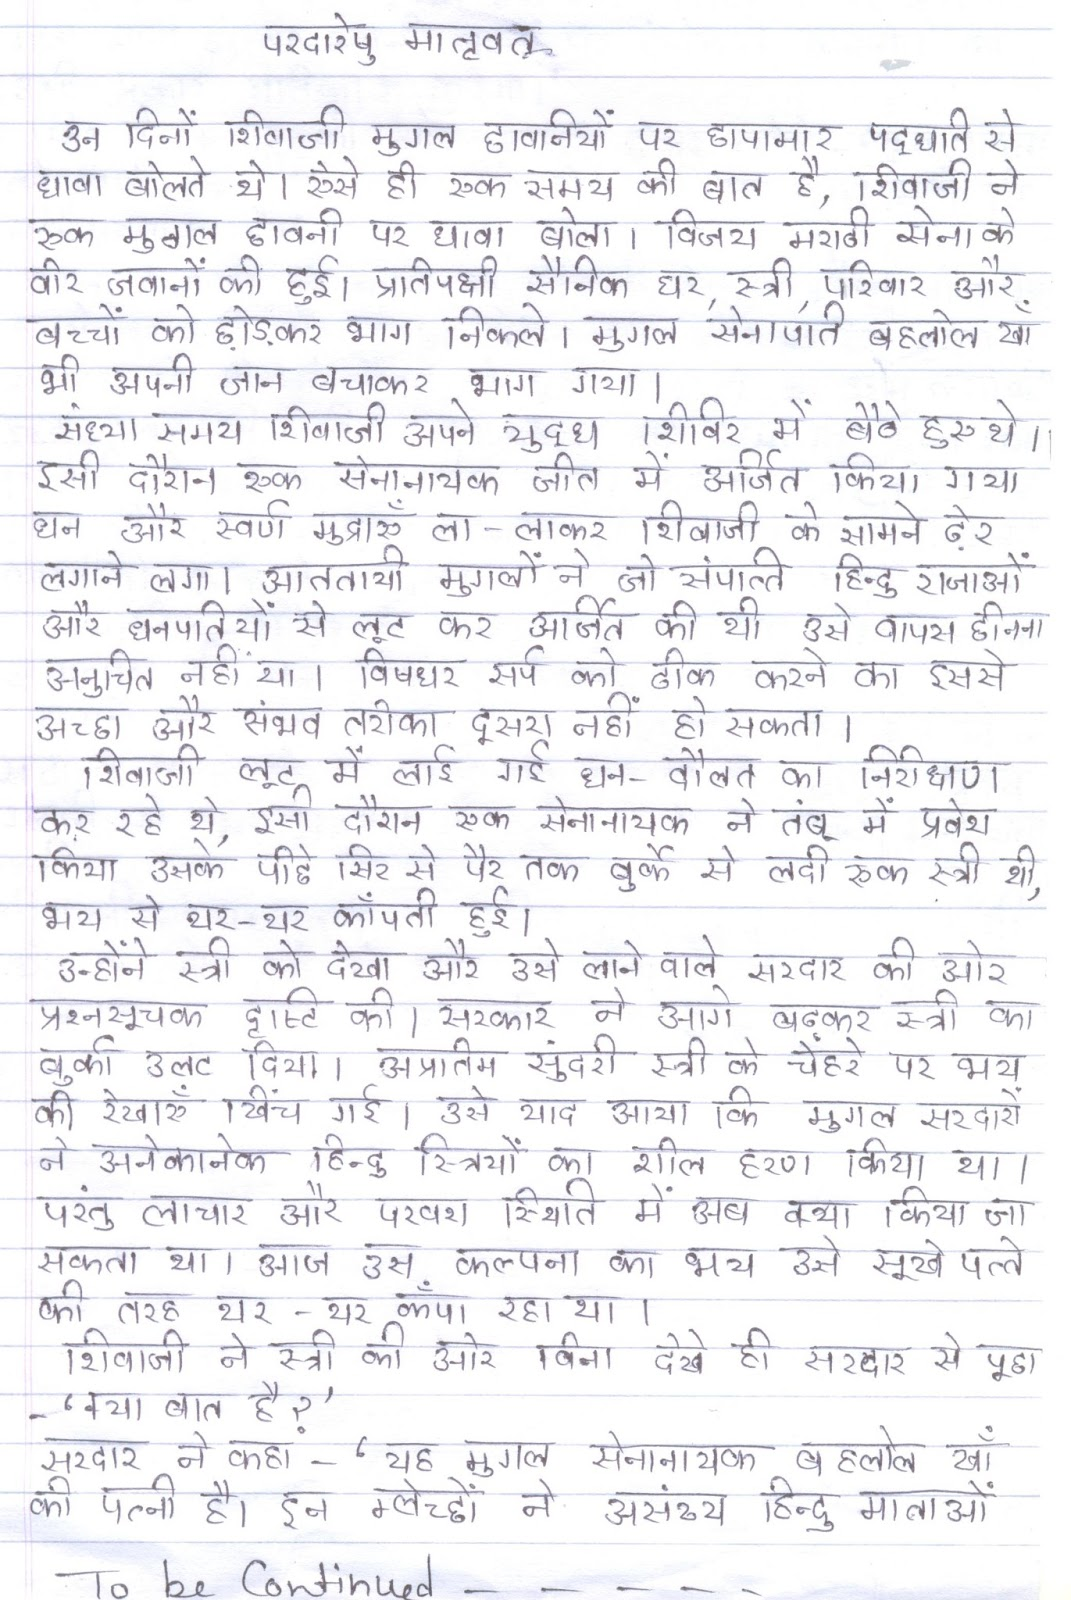 Custom article writing meaning in hindi